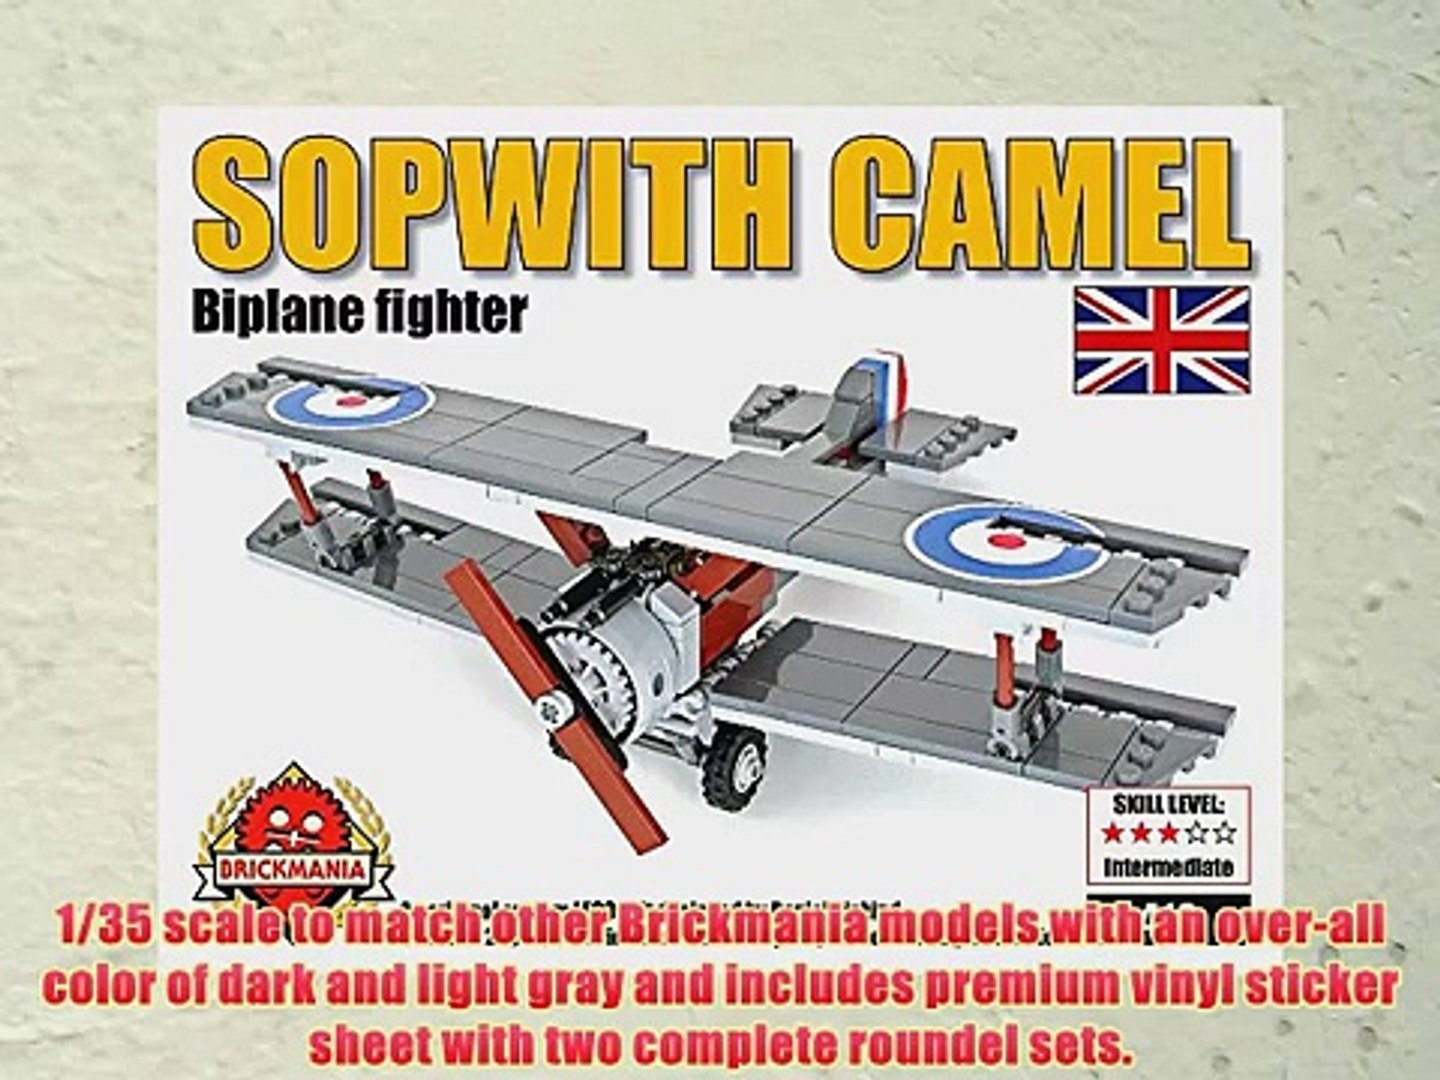 Sopwith Camel WWI Fighter Aircraft custom LEGO® element kit from Brickmania